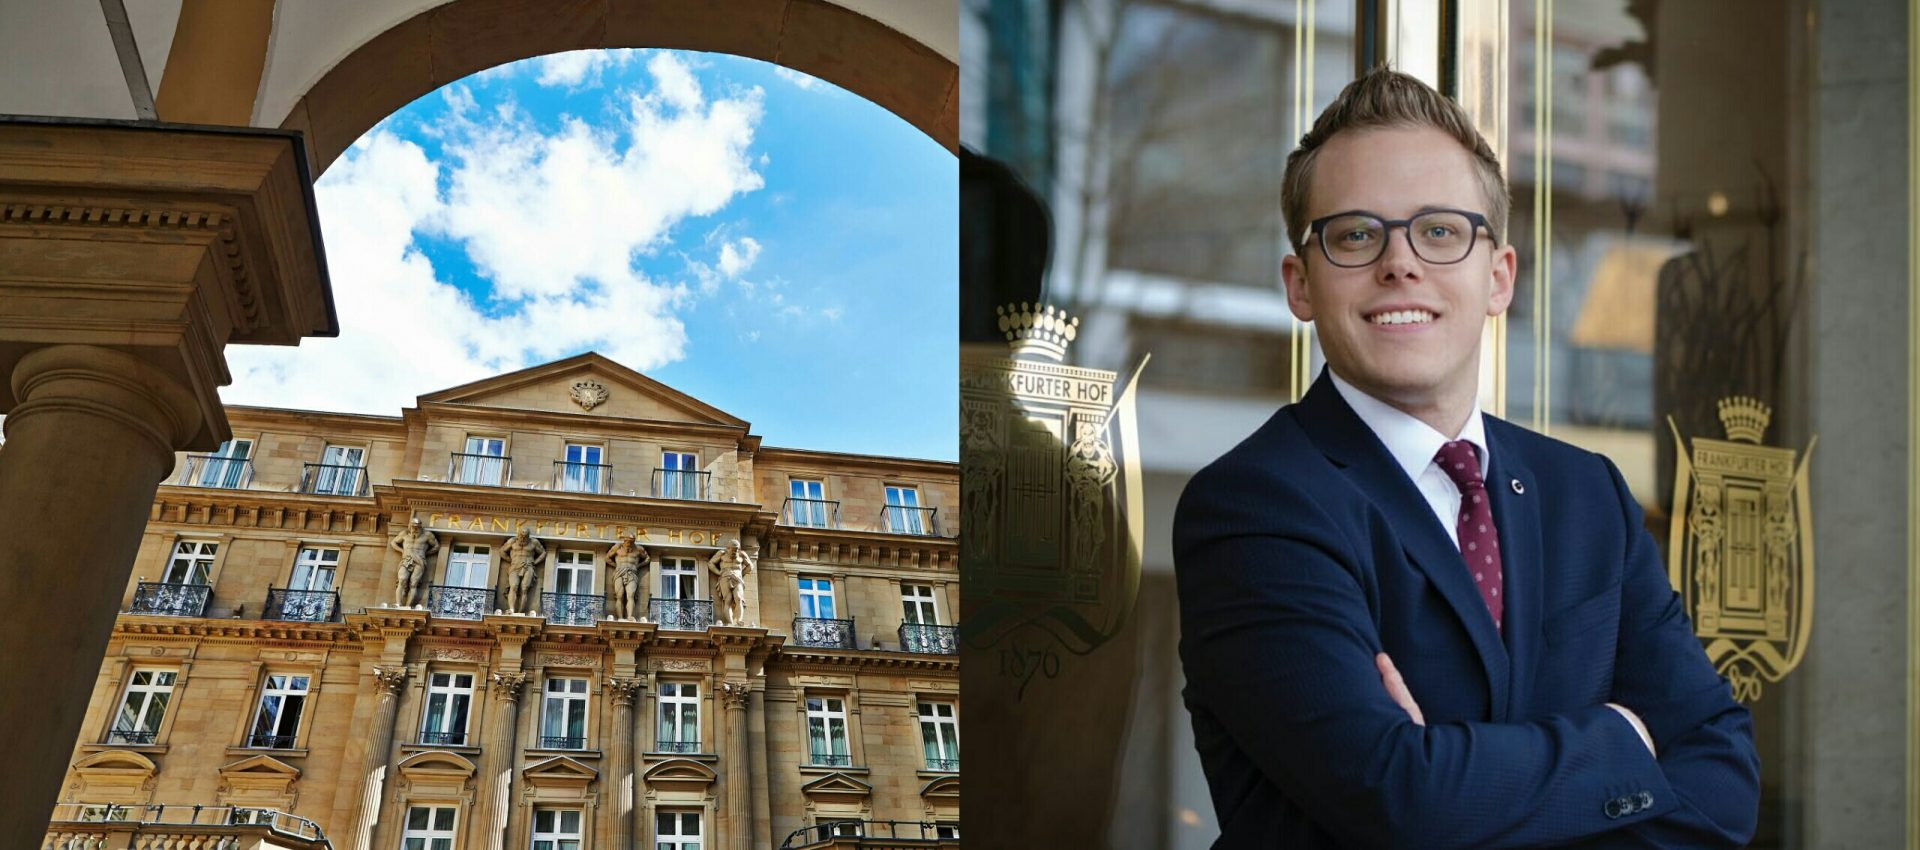 Steigenberger Frankfurter Hof: Andre Burkhard ist der neue Marketing Manager